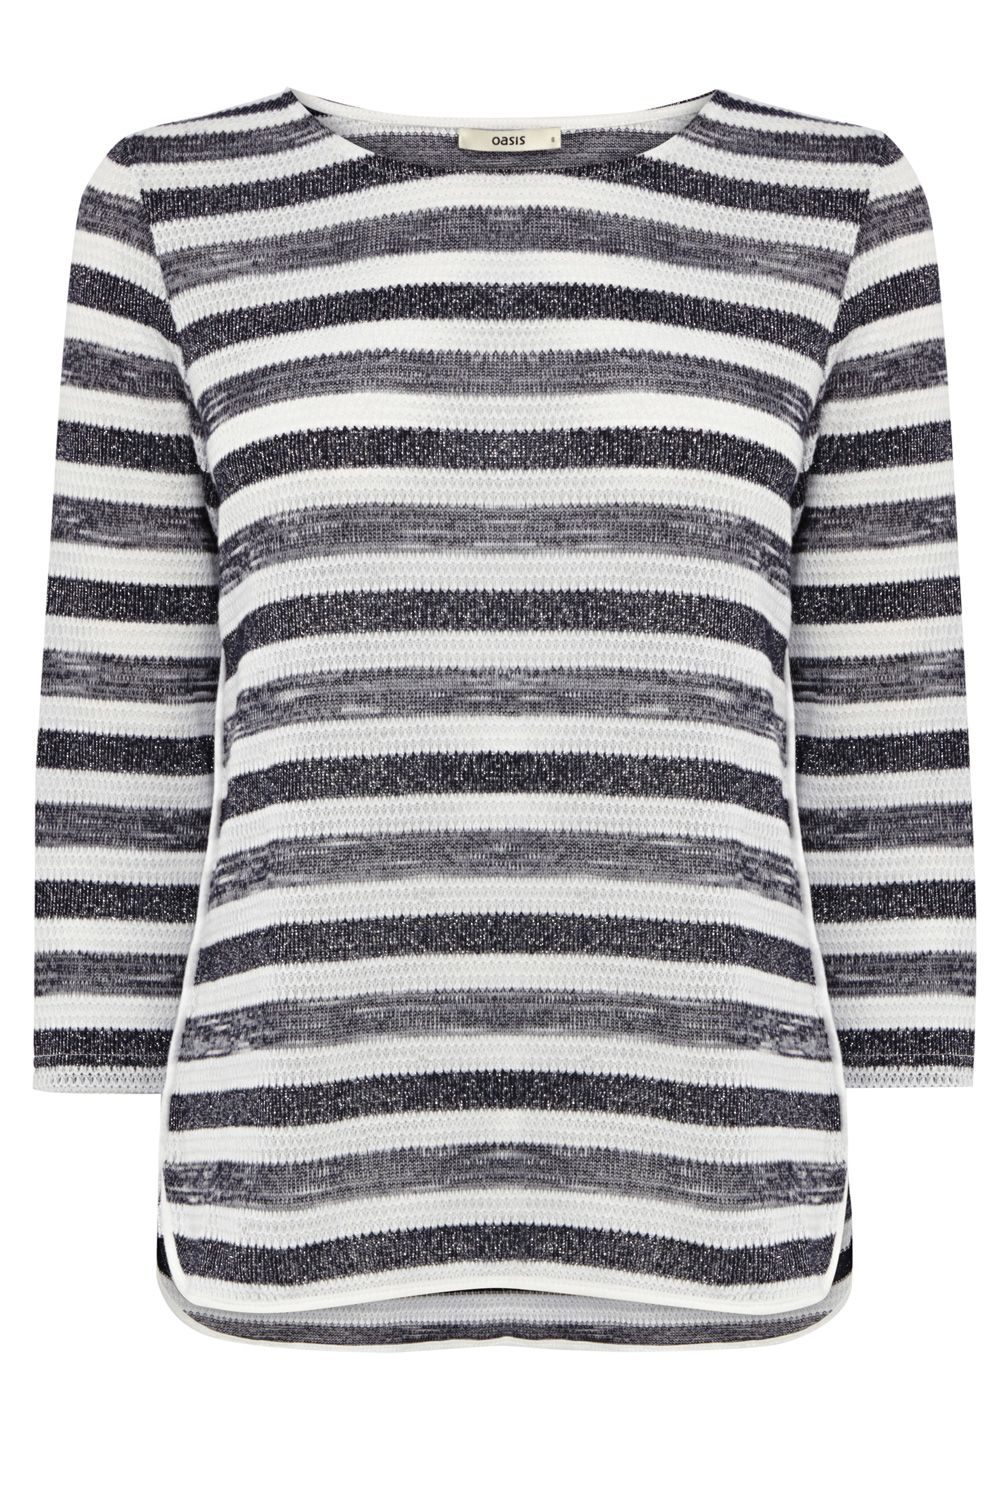 Stripe tuck sparkle top